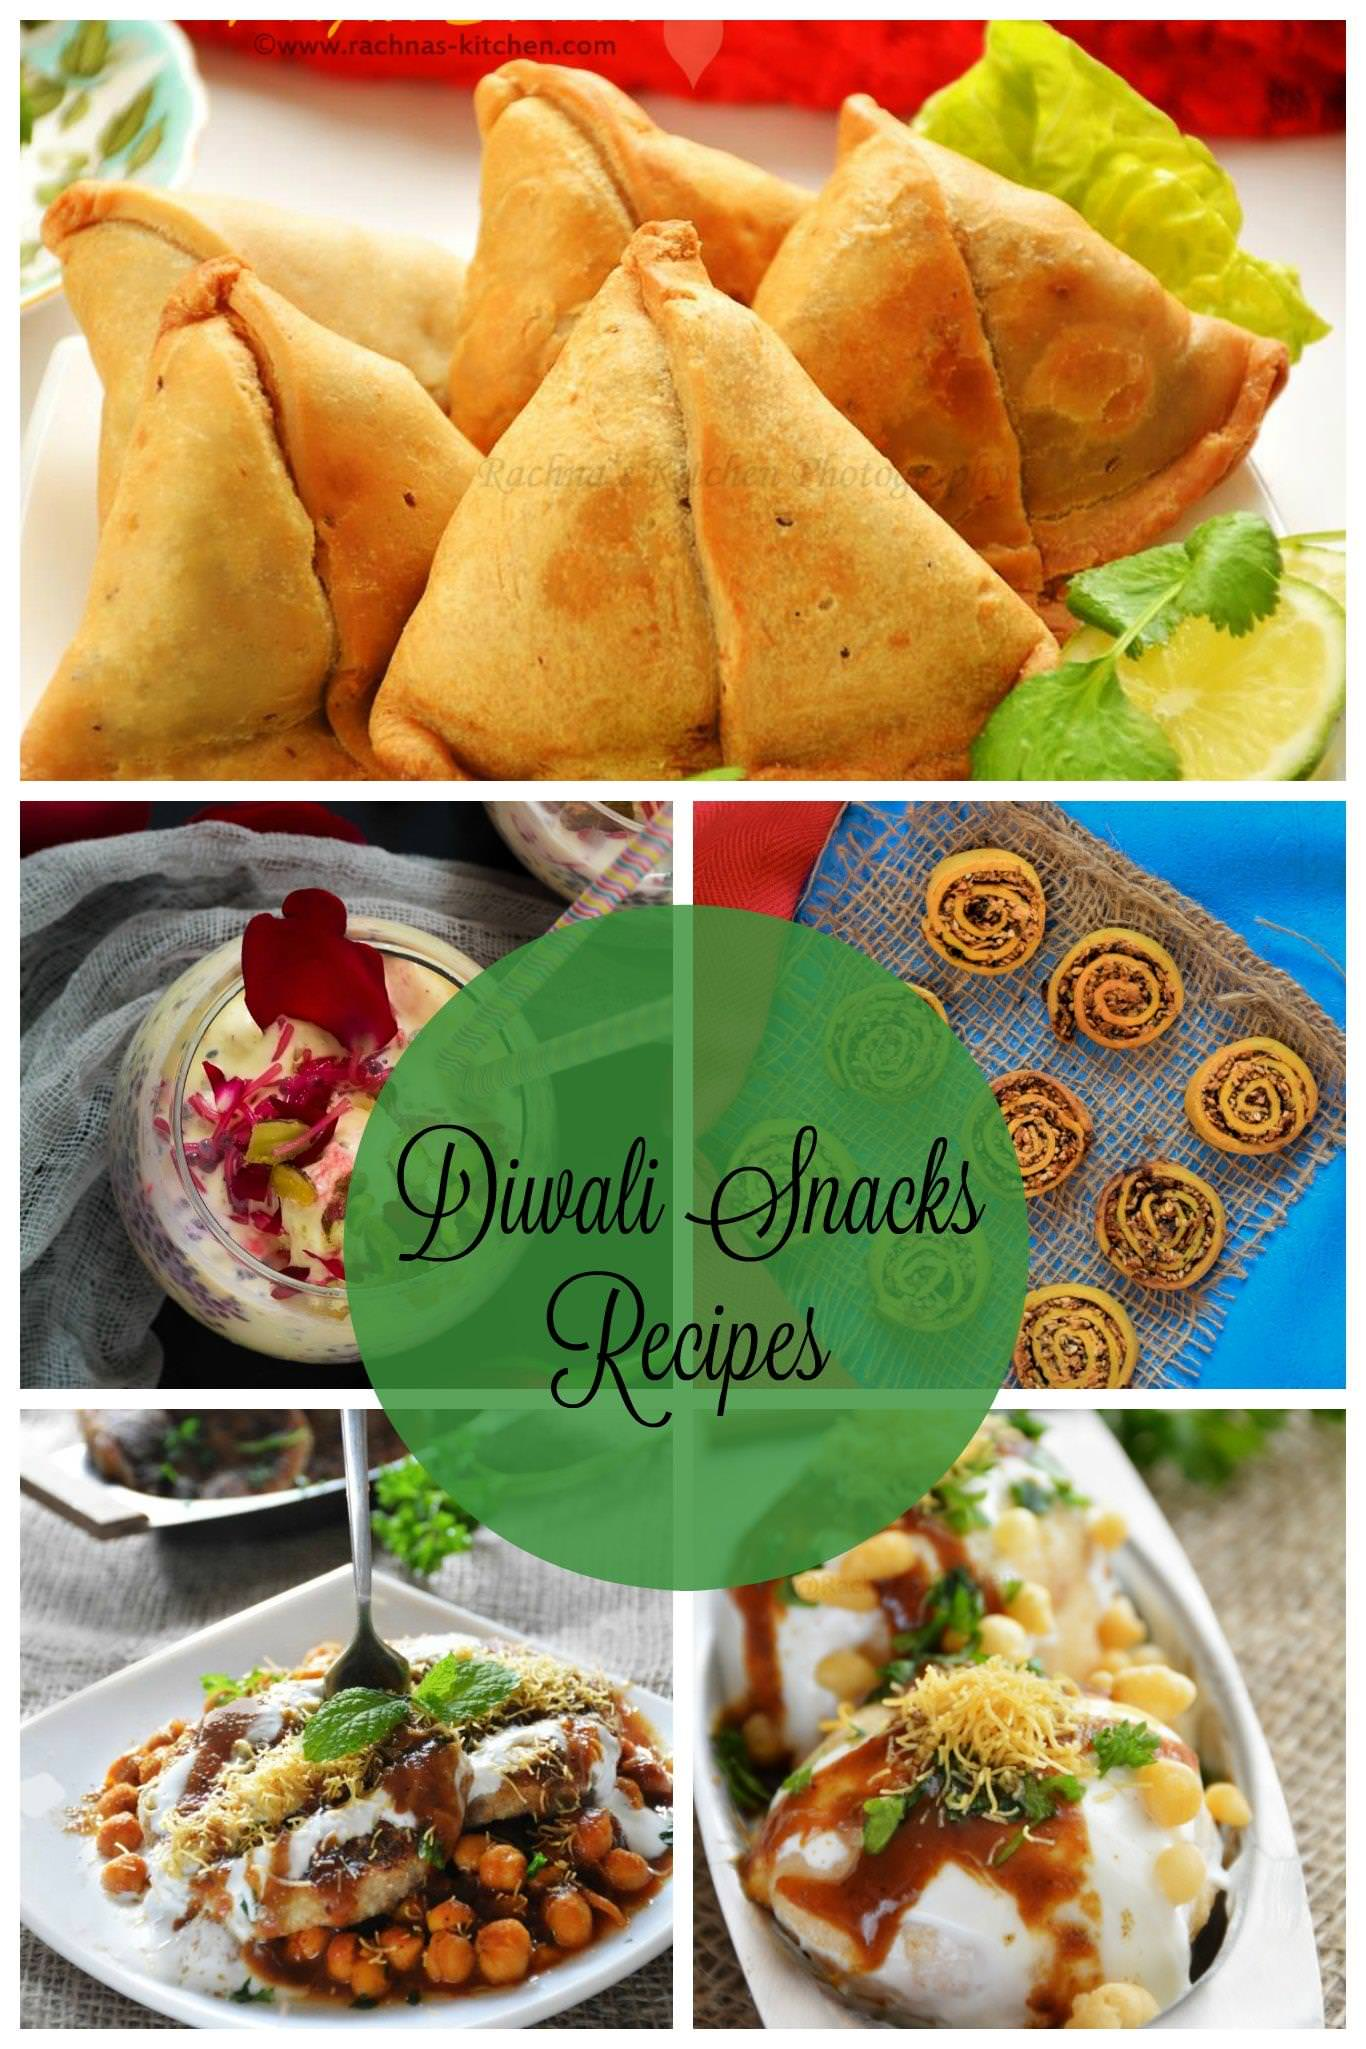 Diwali recipes 2016 | Diwali snacks recipes